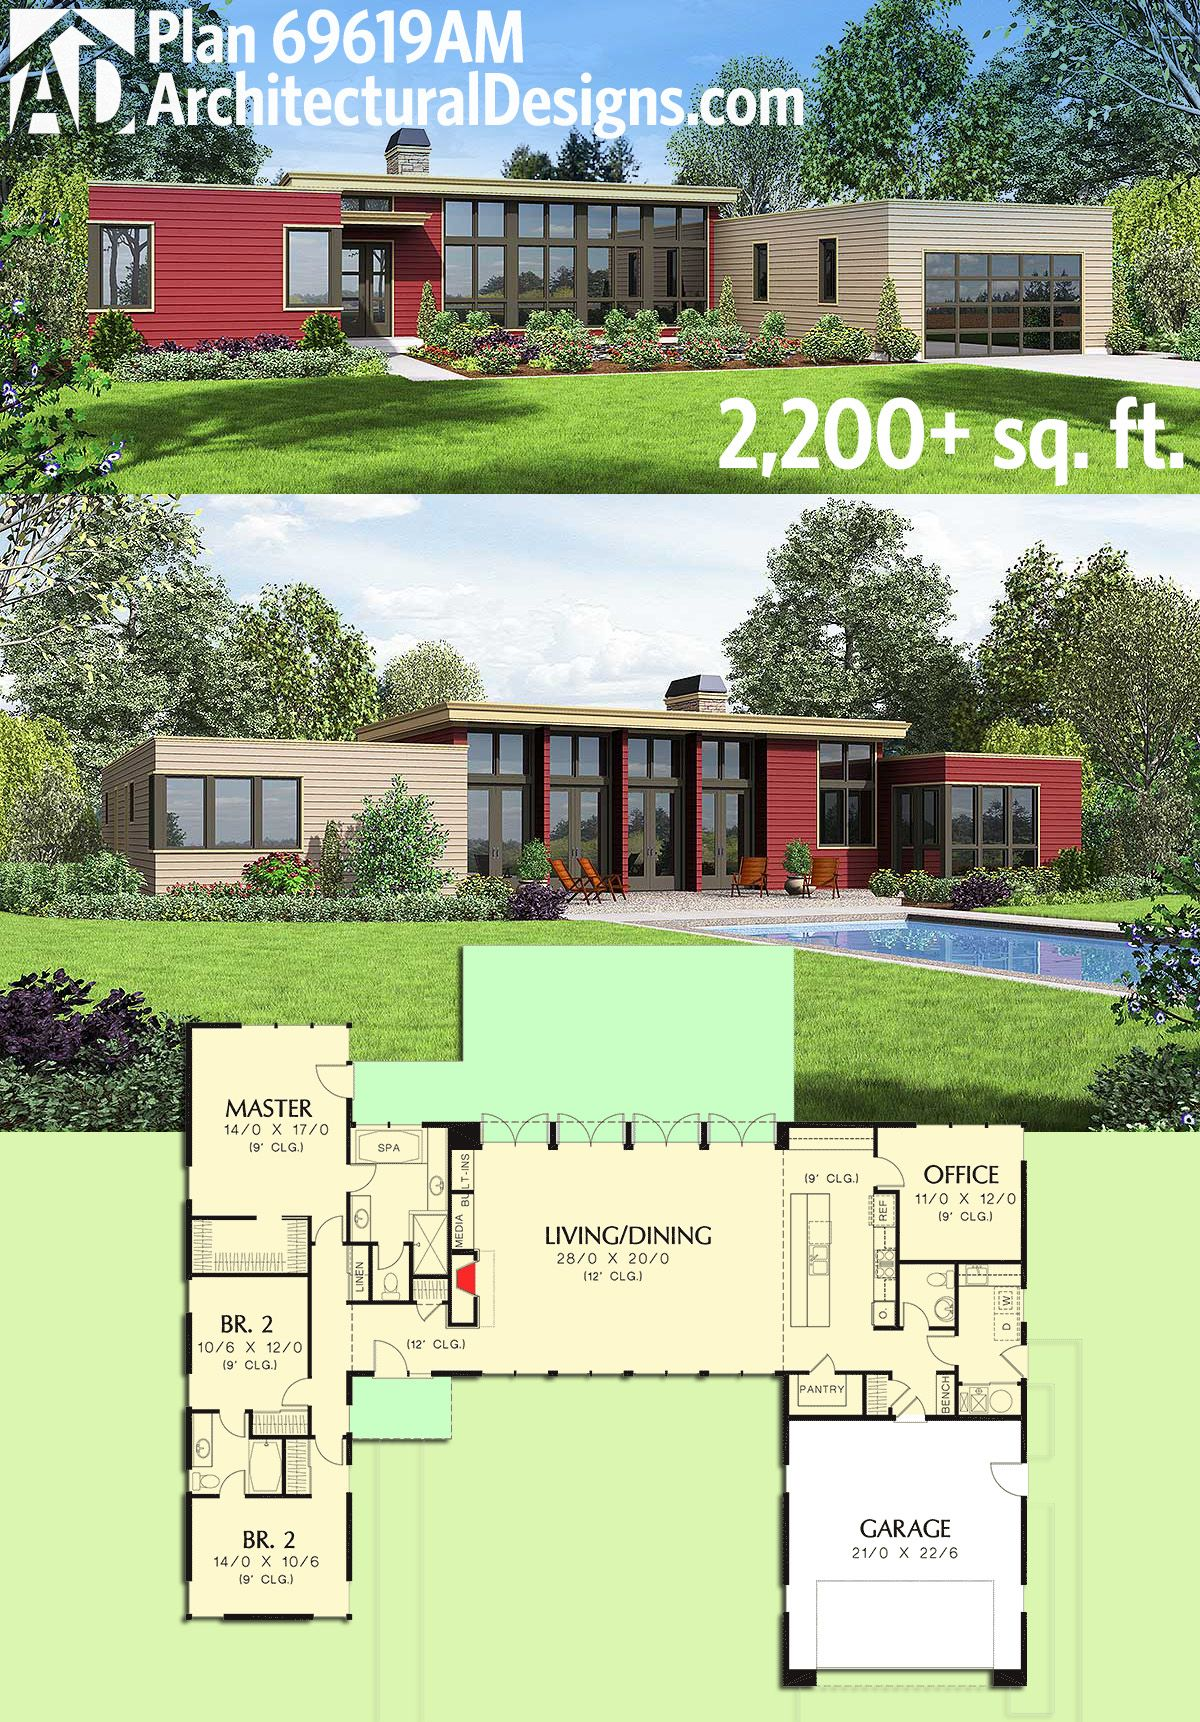 Plan 69619am 3 bed modern house plan with open concept layout modern house plans open Buy house plans